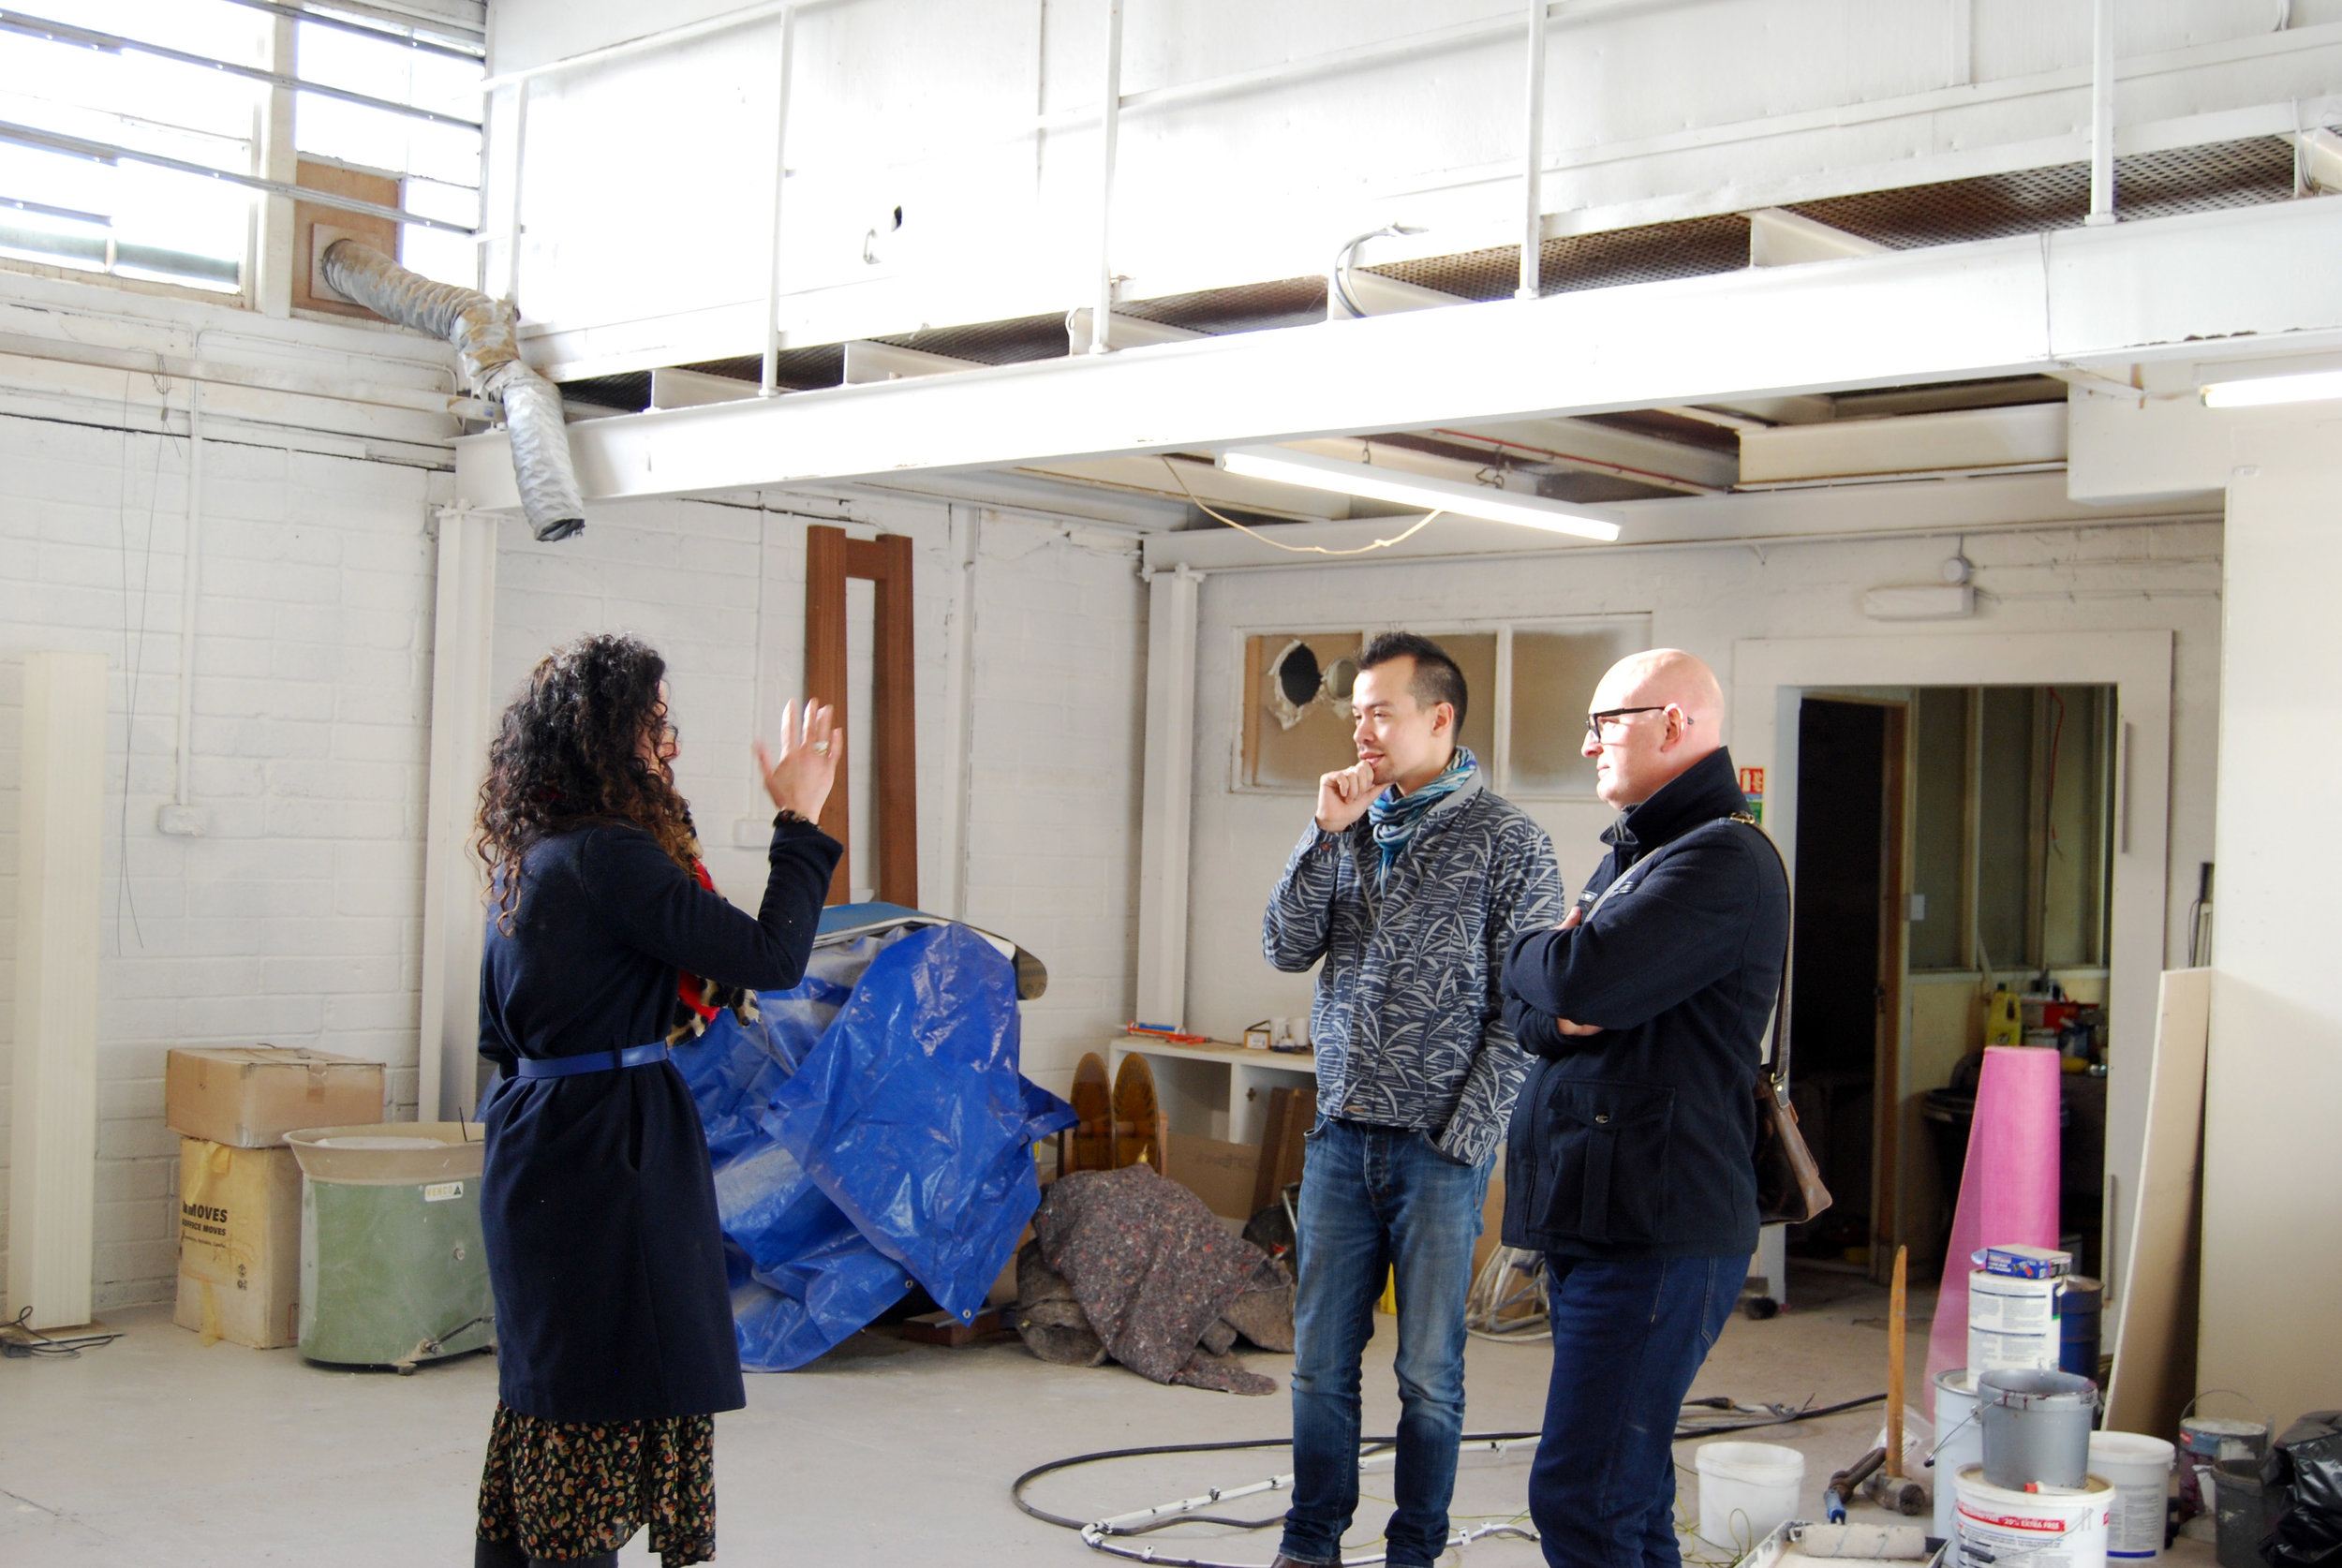 Directors Louise and Dave (and extended Clay Shed family member Barry) in the main tenant's space chatting about clay (most probably).